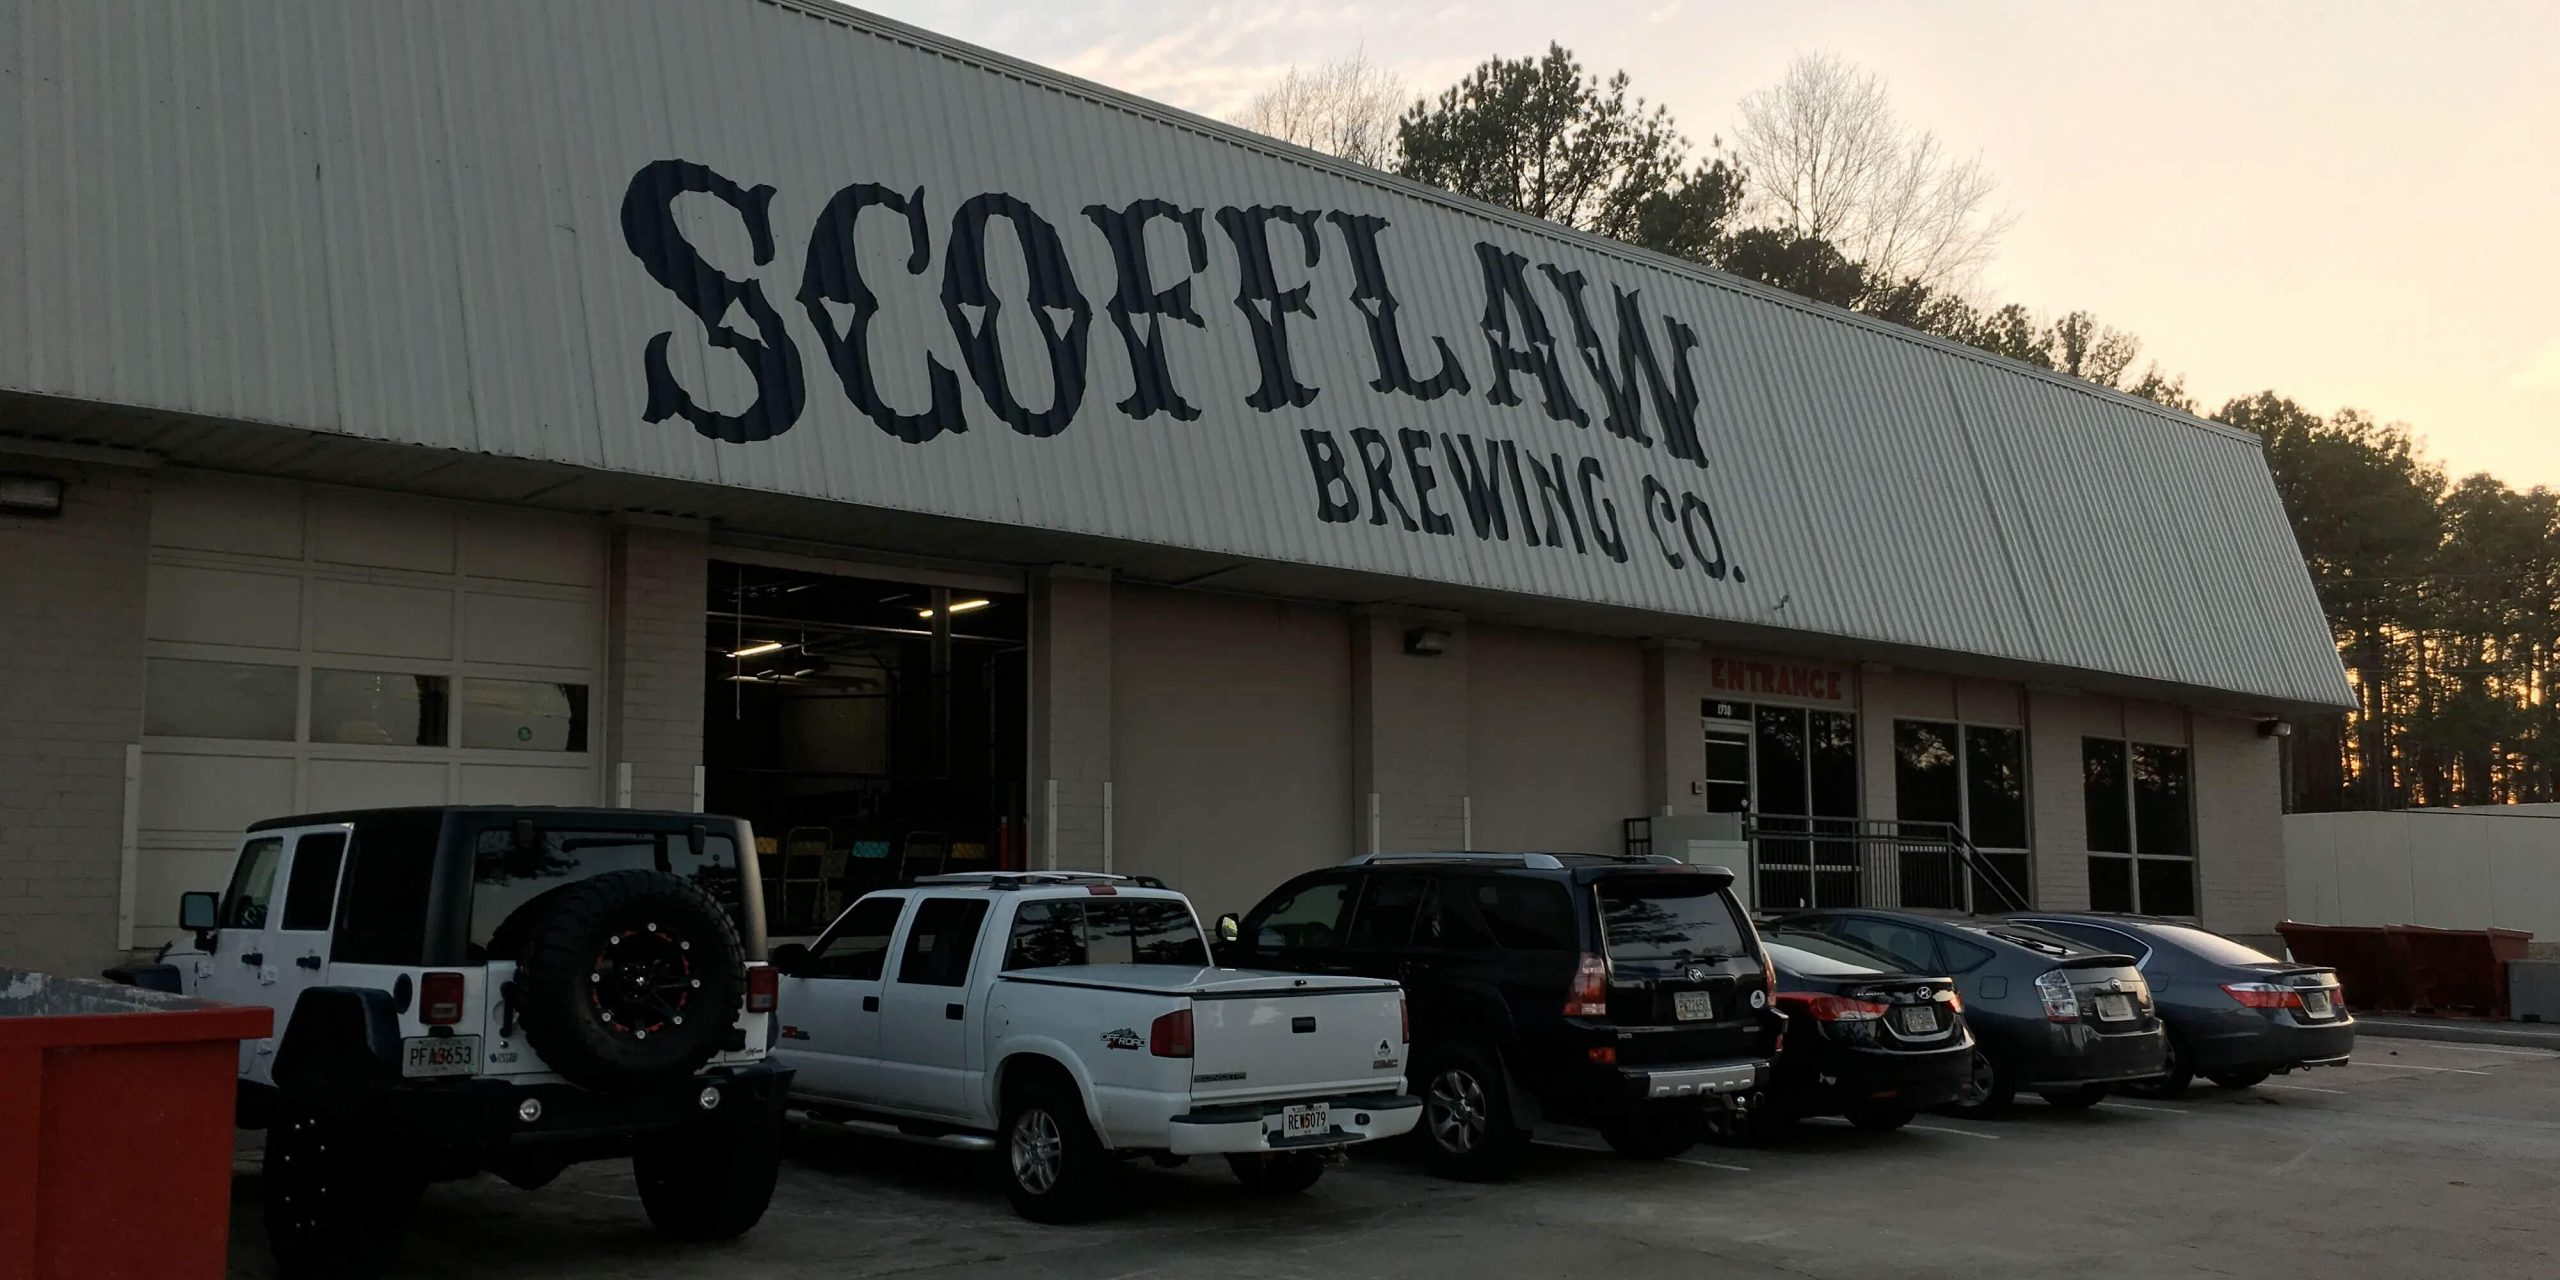 Outside the entrance to Scofflaw Brewing Co. in Atlanta, Georgia